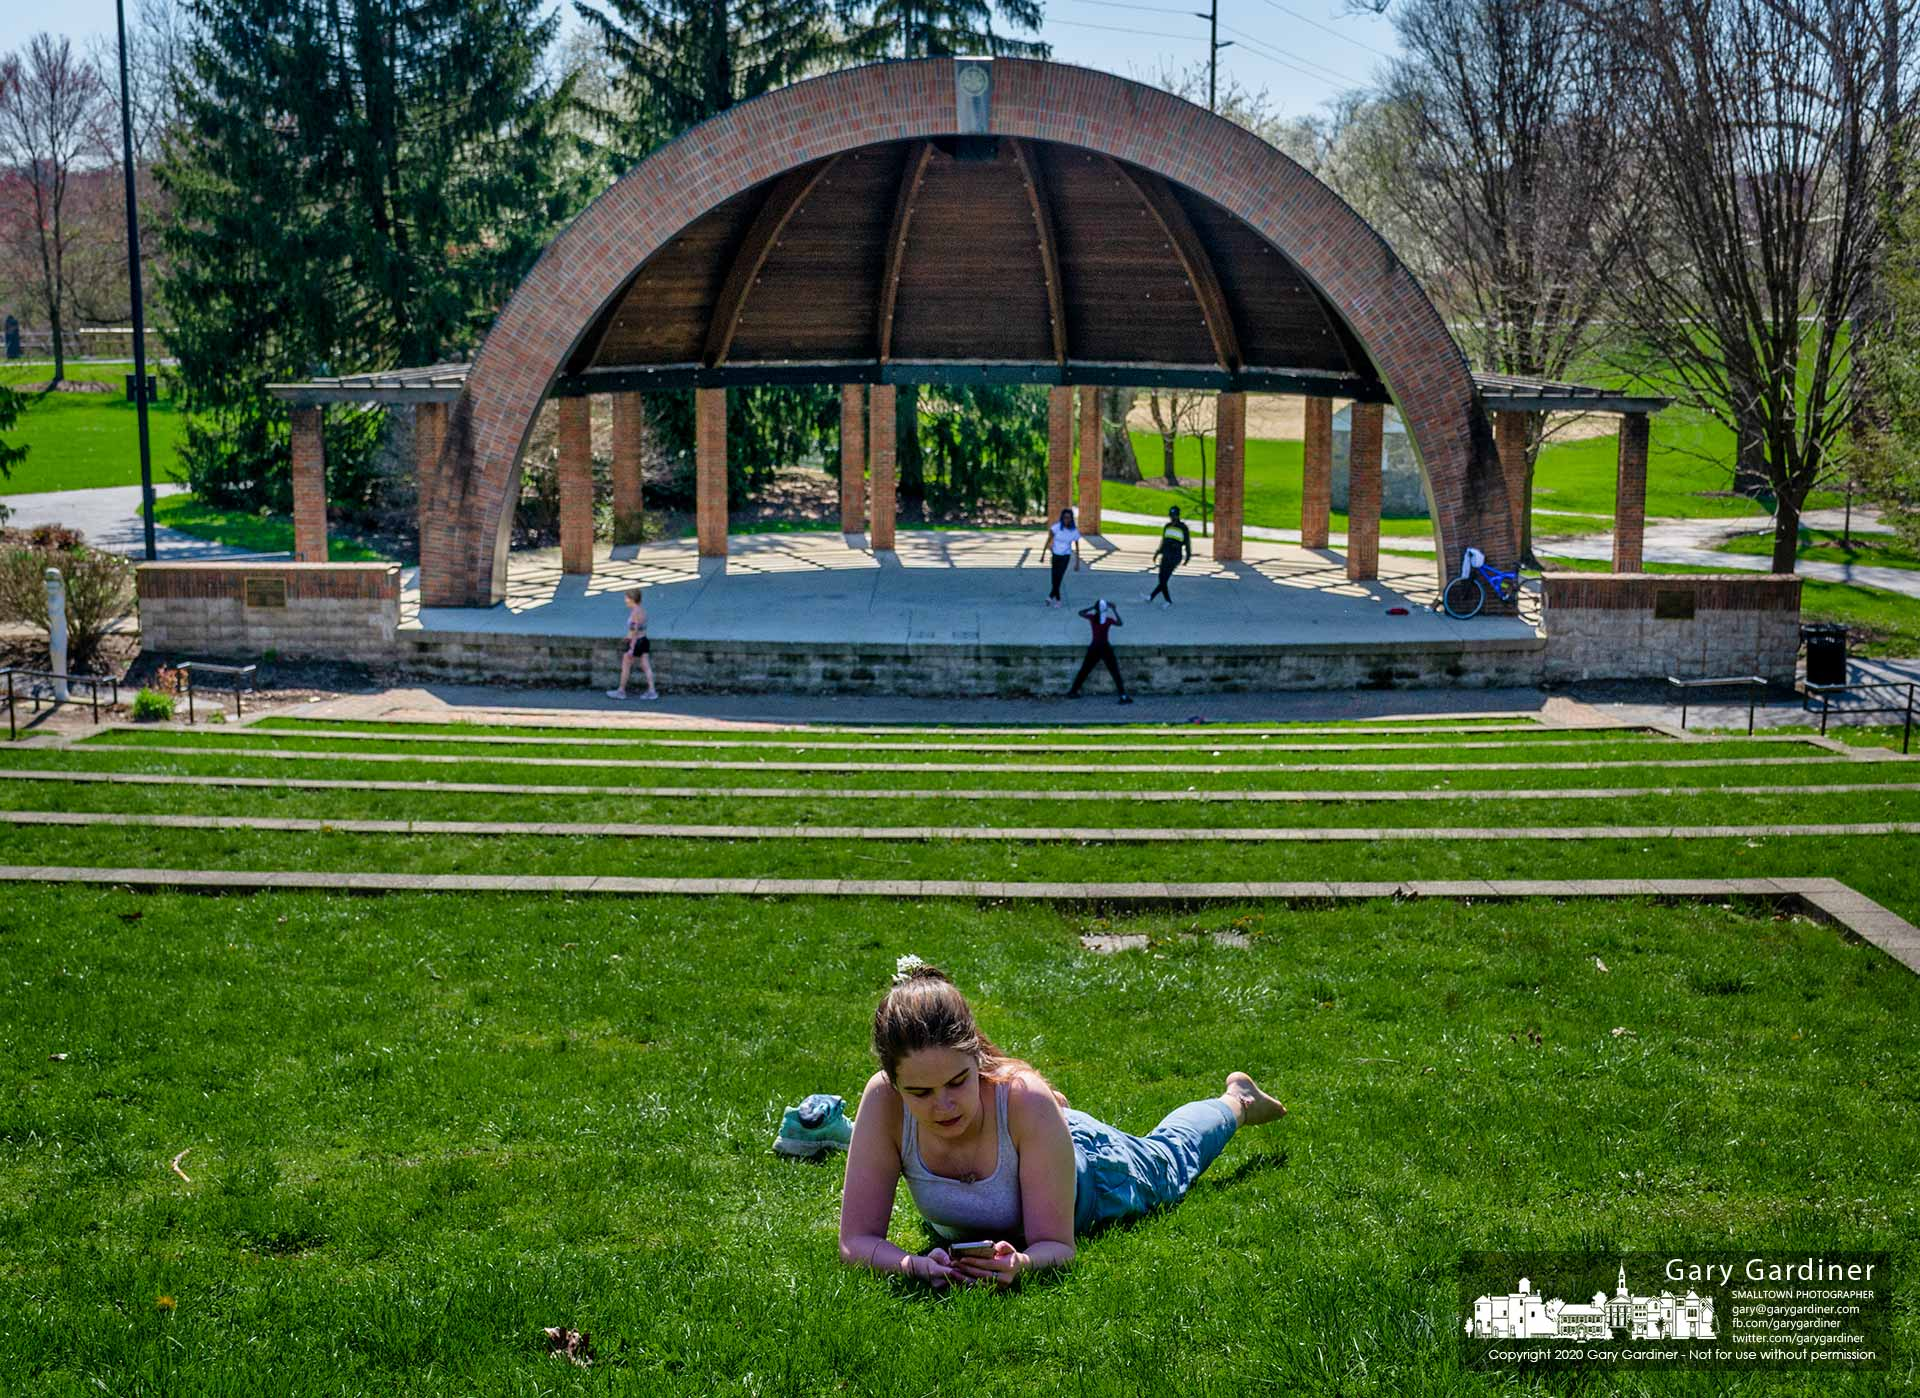 A young woman checks her phone during a break in her walk through Alum Creek Park on West Main Street where other visitors practice dance steps or athletes run the stairs. My Final Photo for April 6, 2020.